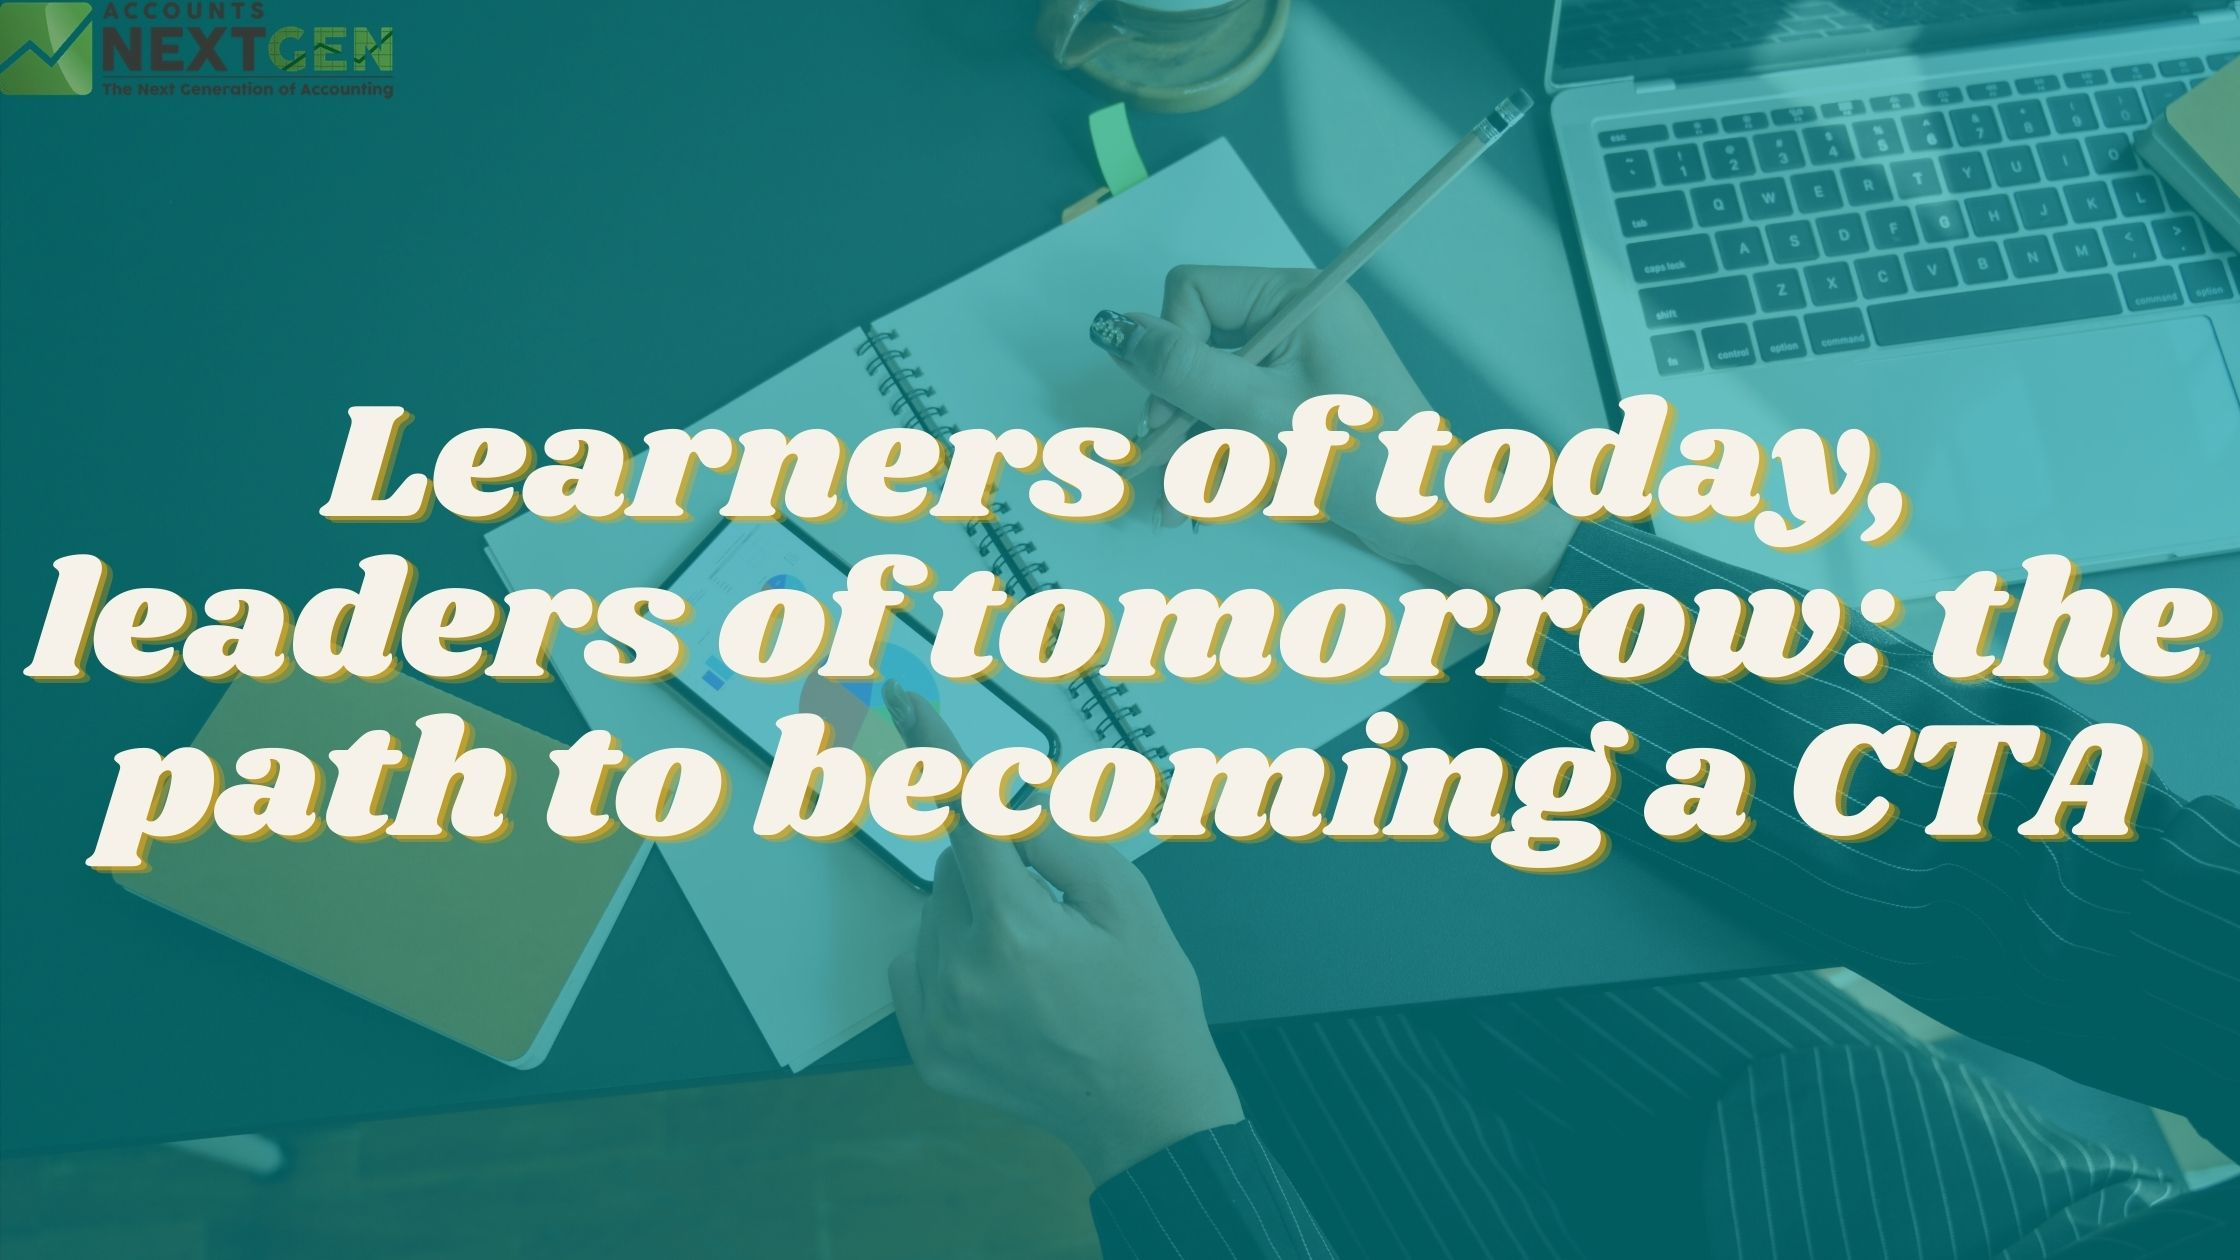 Learners of today, leaders of tomorrow: the path to becoming a CTA